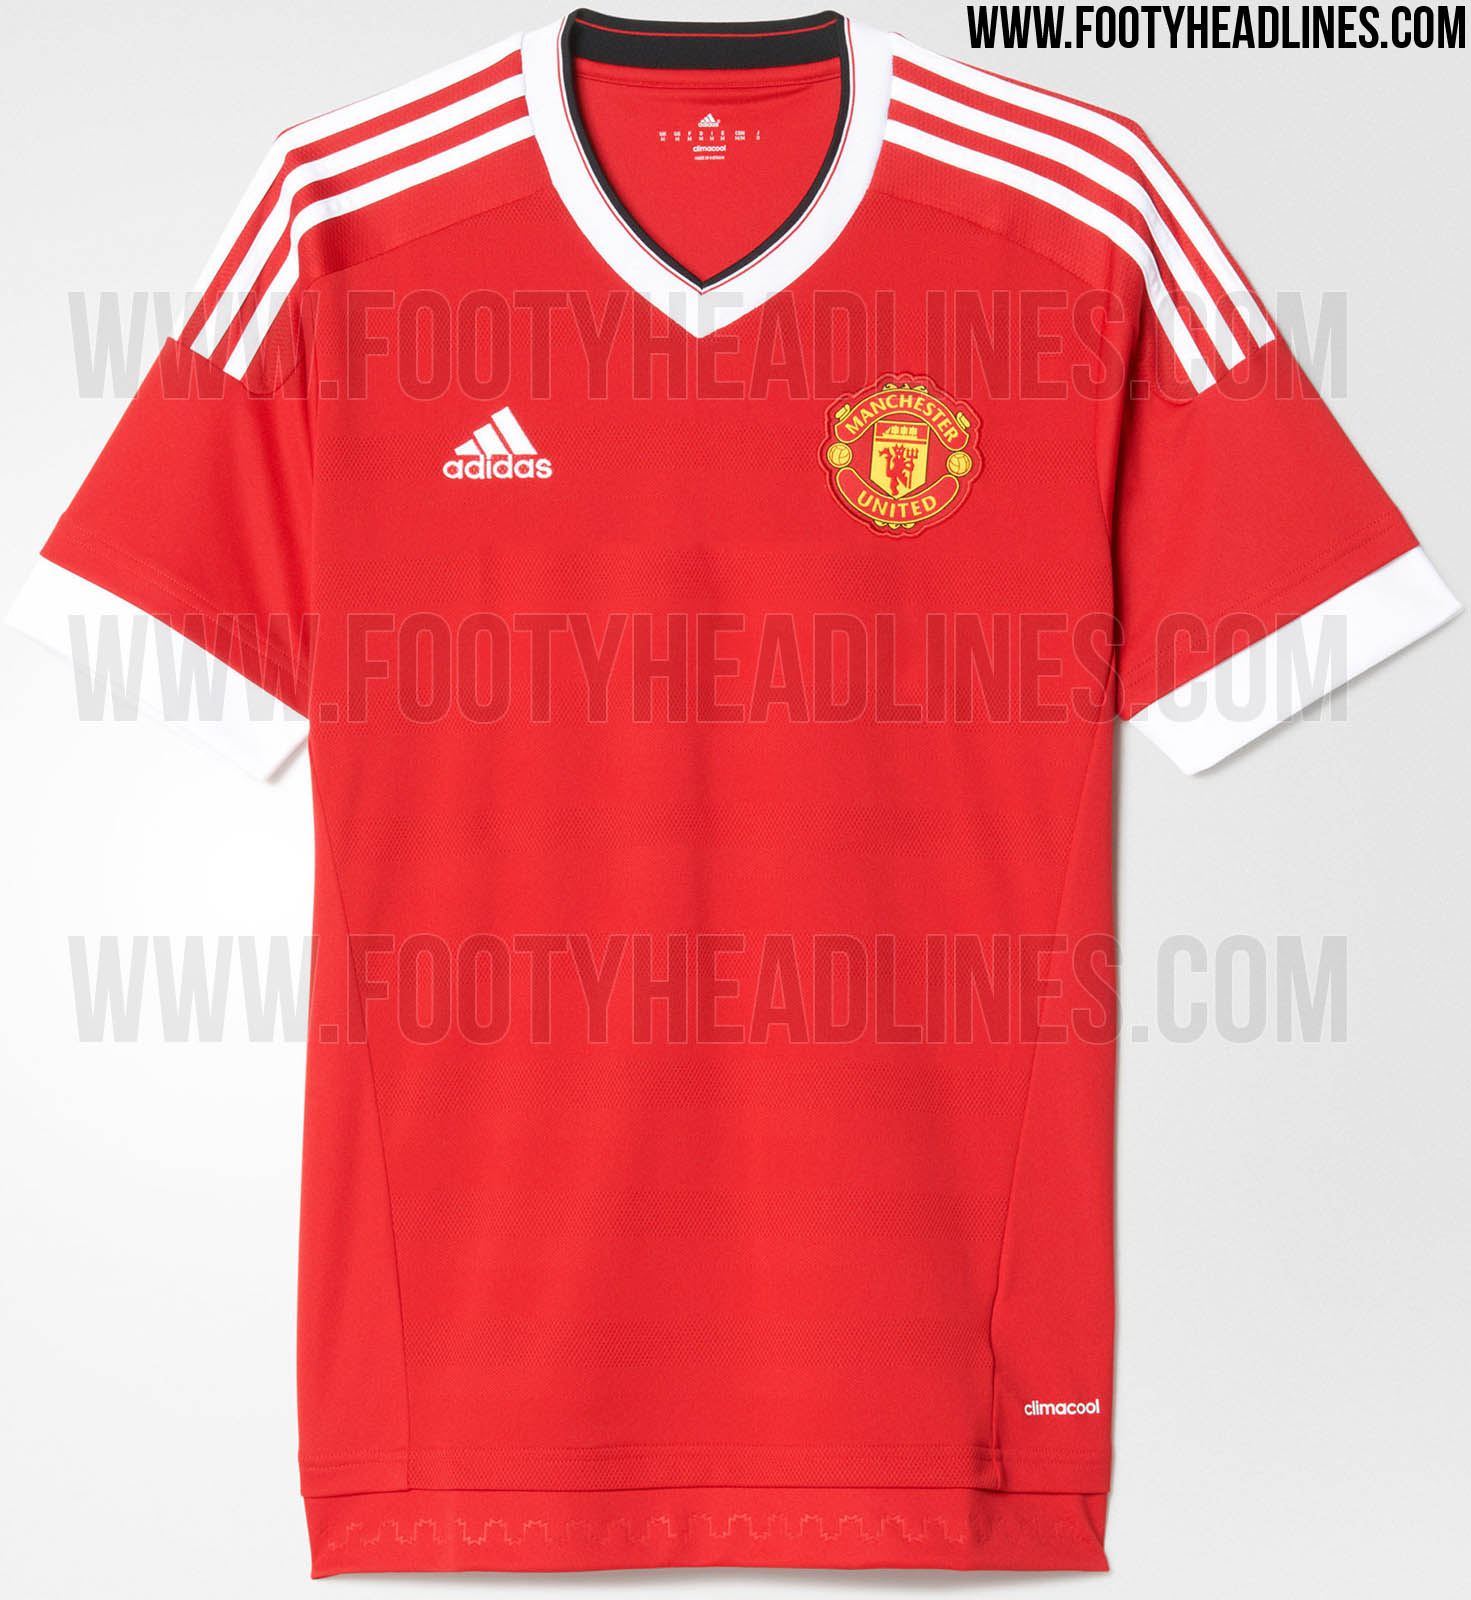 adidas manchester united 15 16 kit with classic sponsors